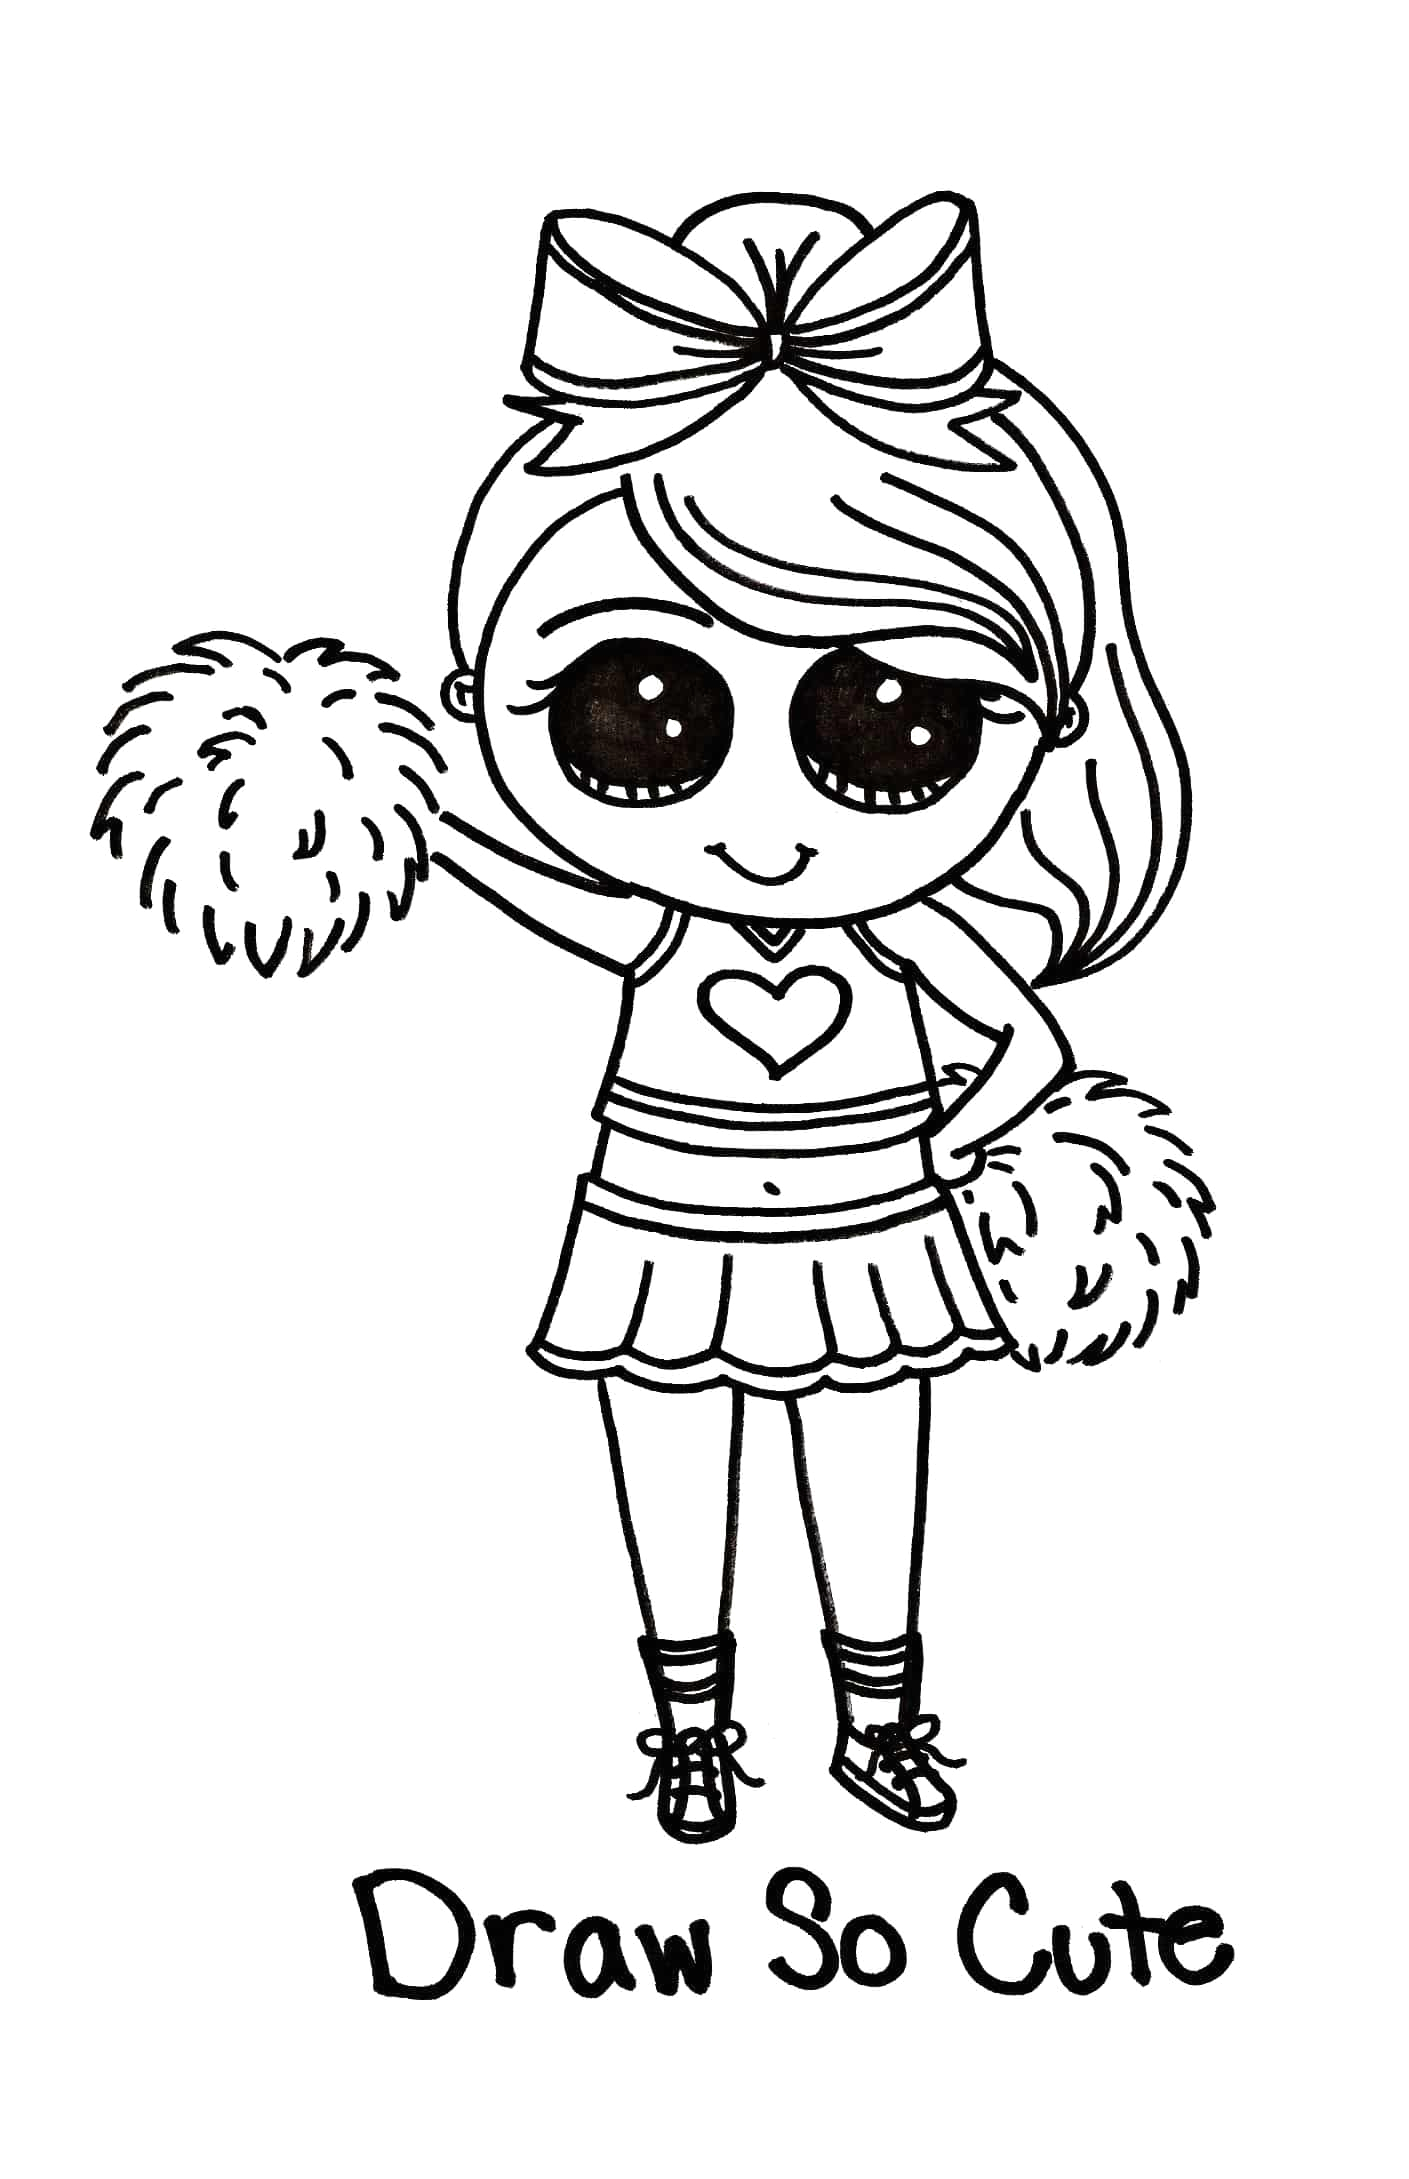 Draw so Cute Coloring Pages to Print Cute Coloring Pages for Easter New Easter Draw so Cute